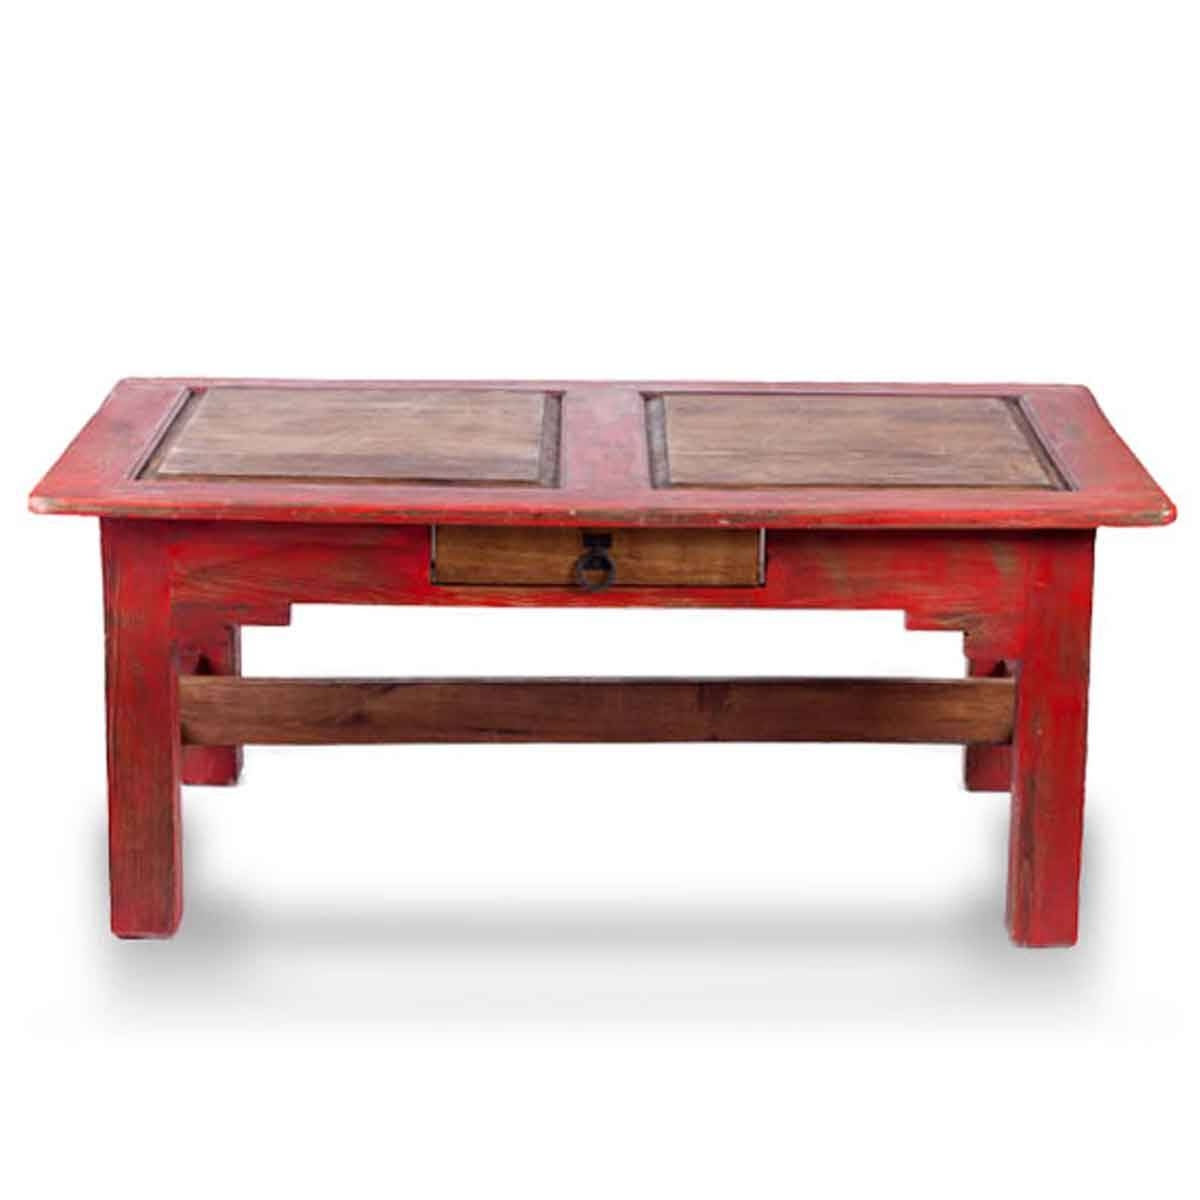 Order Rustic Coffee Tables Online | Buy Reclaimed Wood Coffee intended for Red Coffee Table (Image 18 of 30)